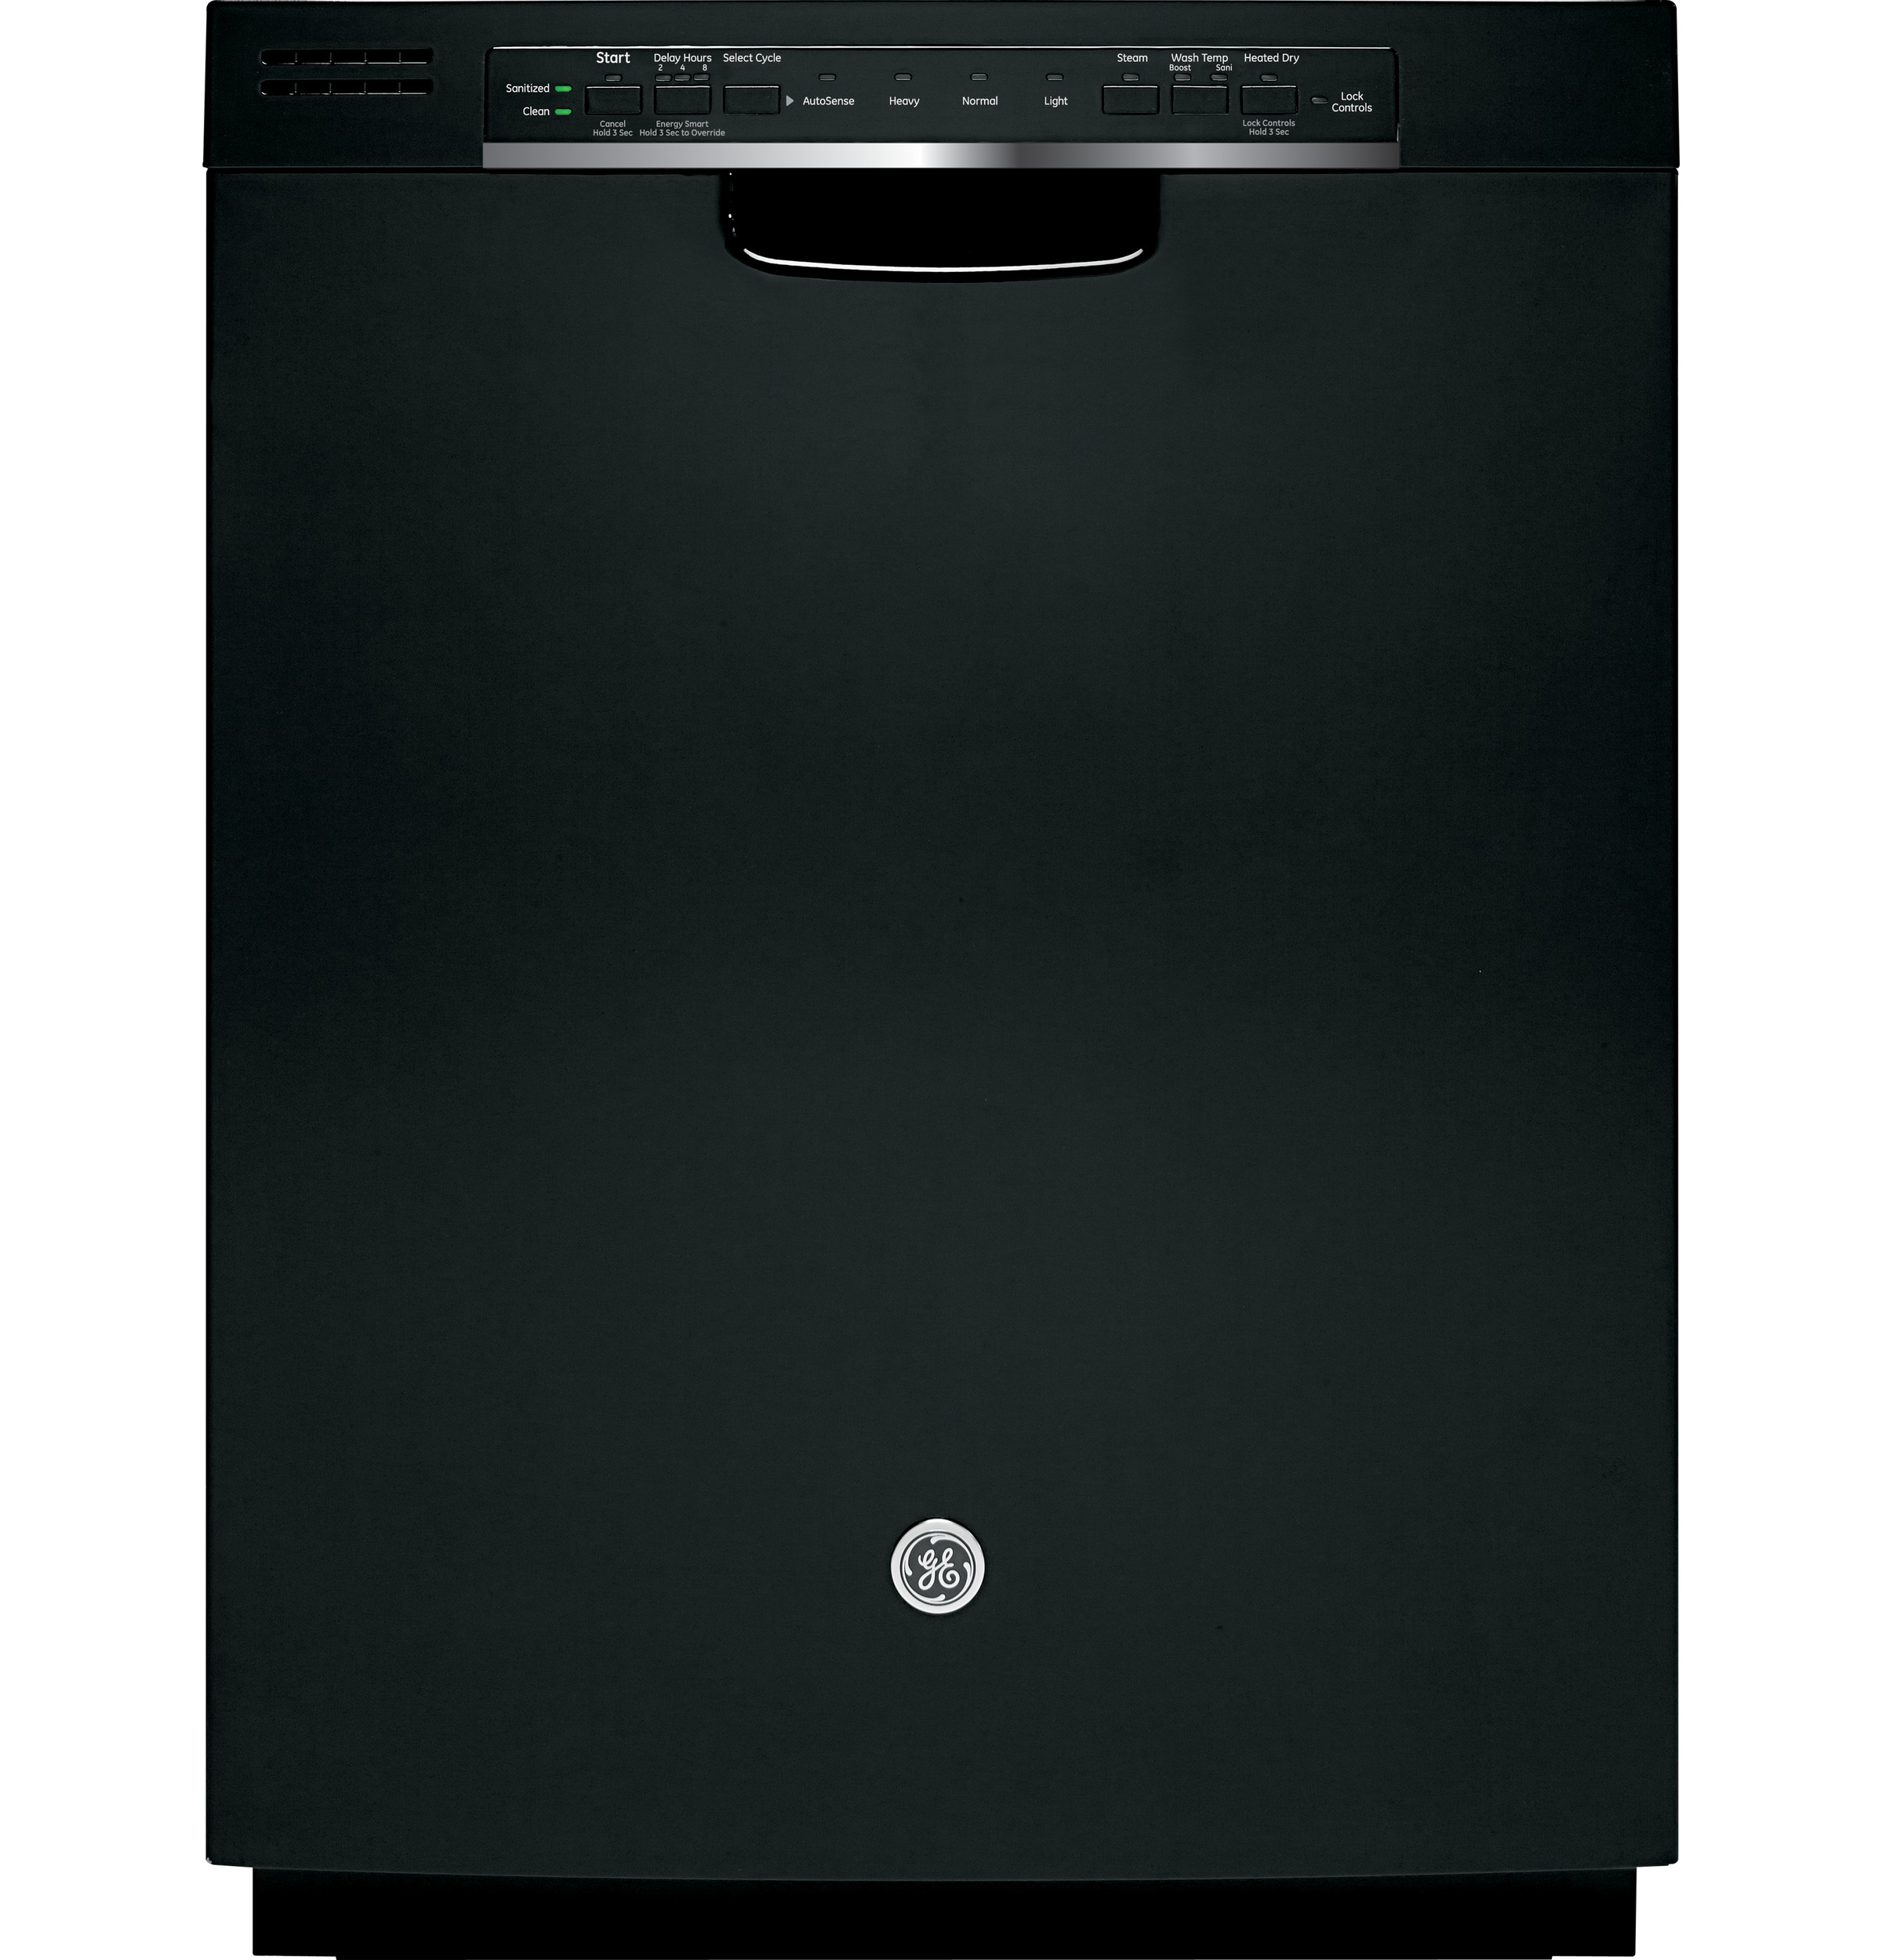 General Electric Dishwasher Troubleshooting Gear Stainless Steel Interior Dishwasher With Front Controls